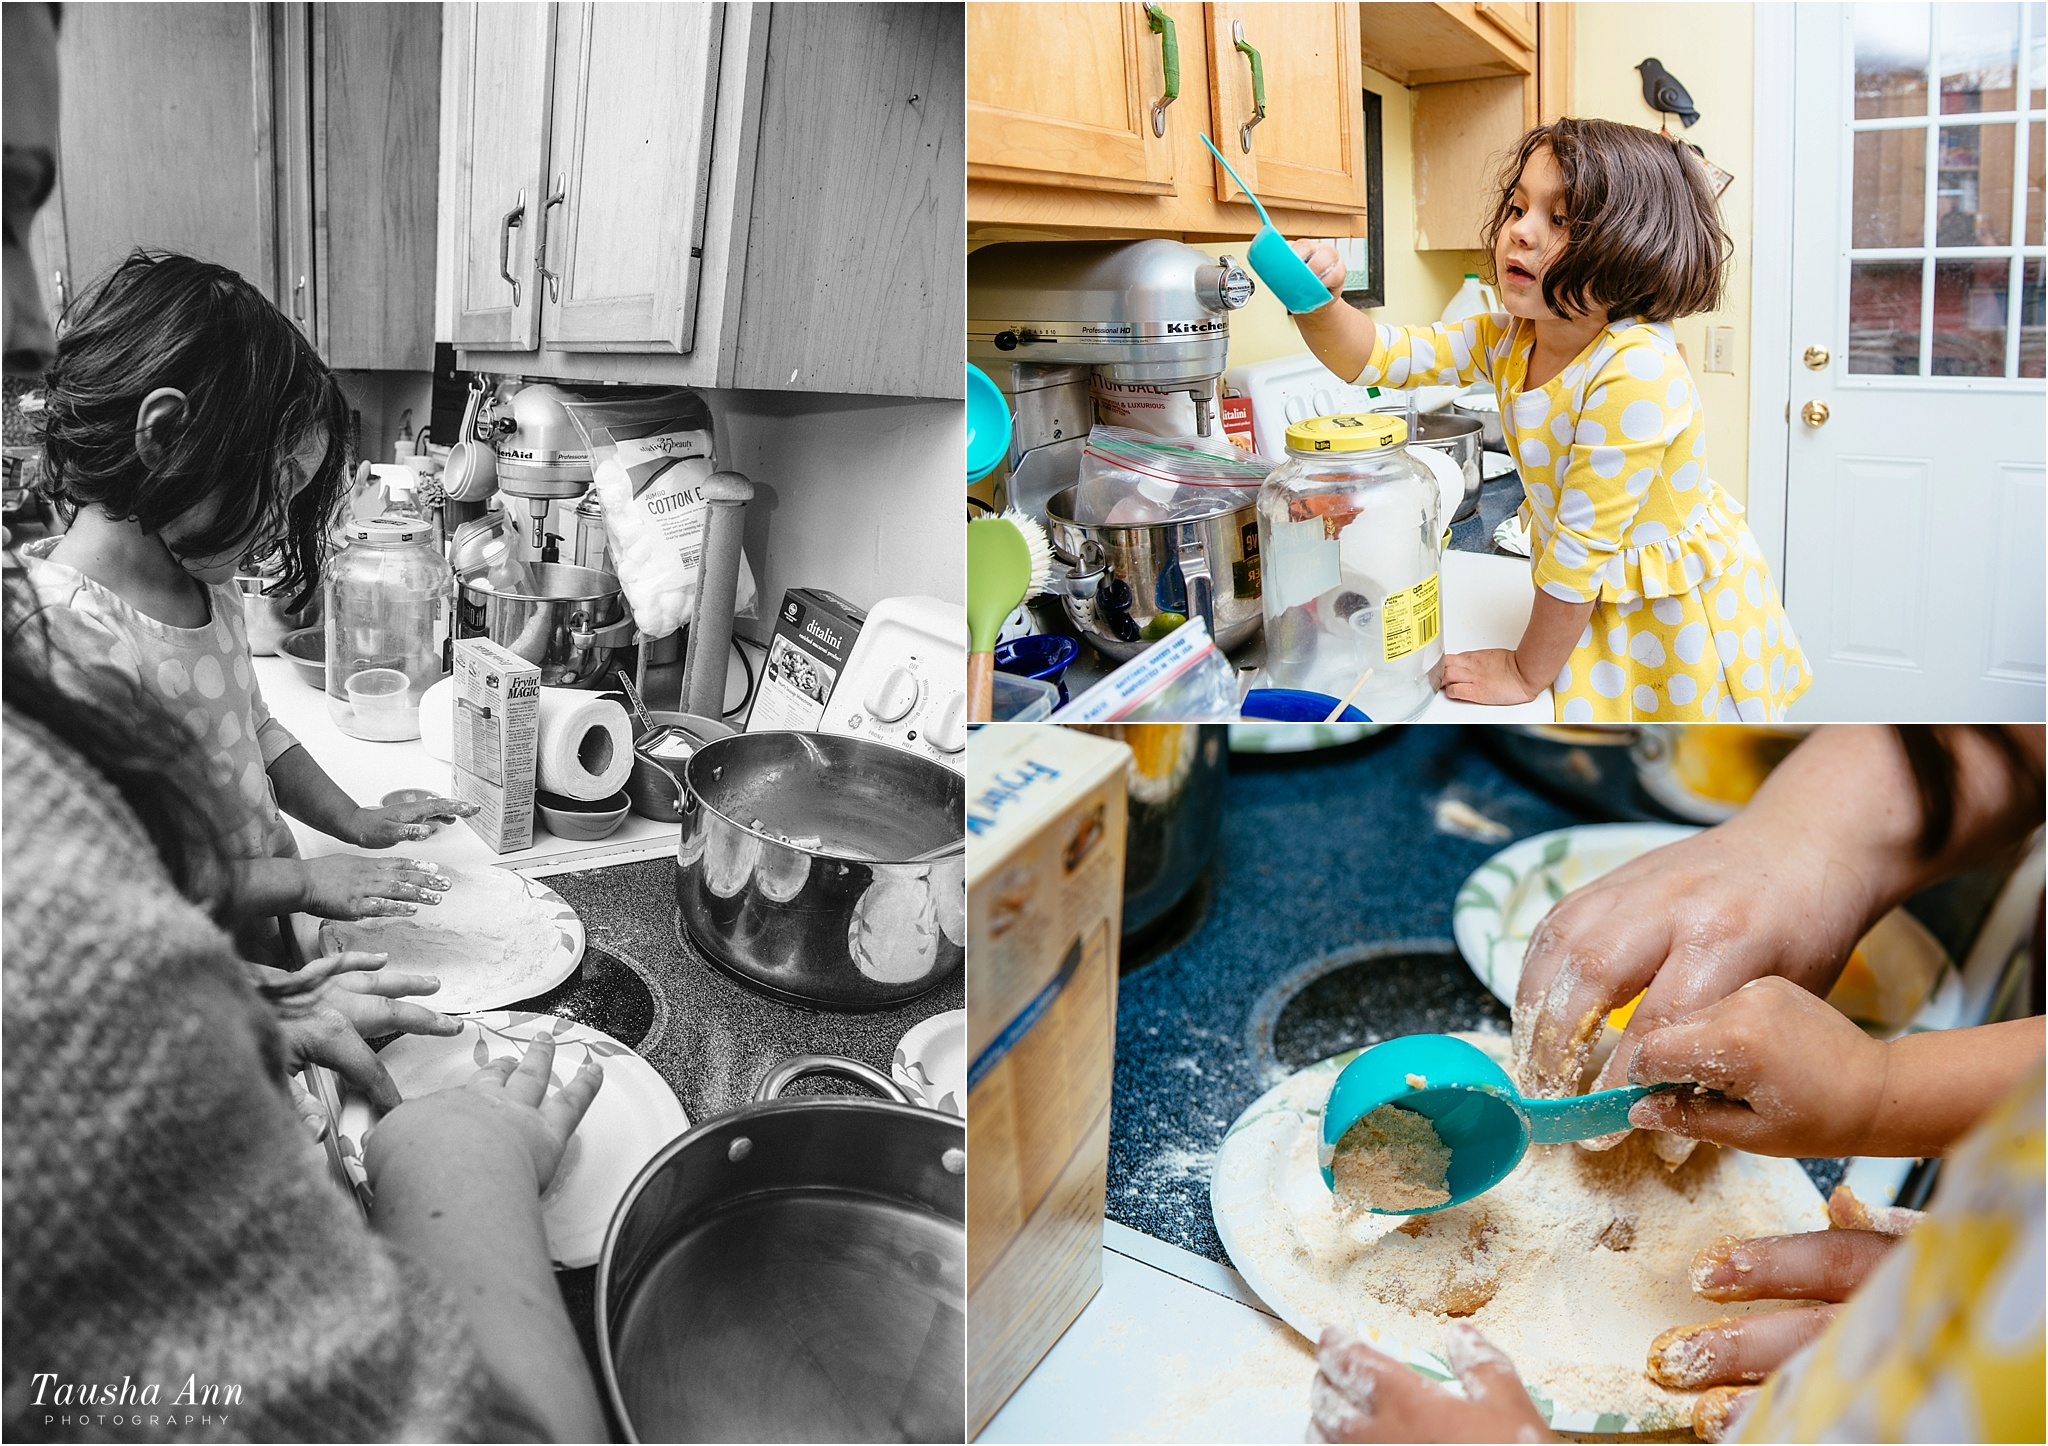 Life_At_Sunset_Lifestyle_Session_Tausha_Ann_Photography_Nashville_TN_Family_Photographer_Kids_Toddler_Baby_Cooking_Indoors_With_Mom-12